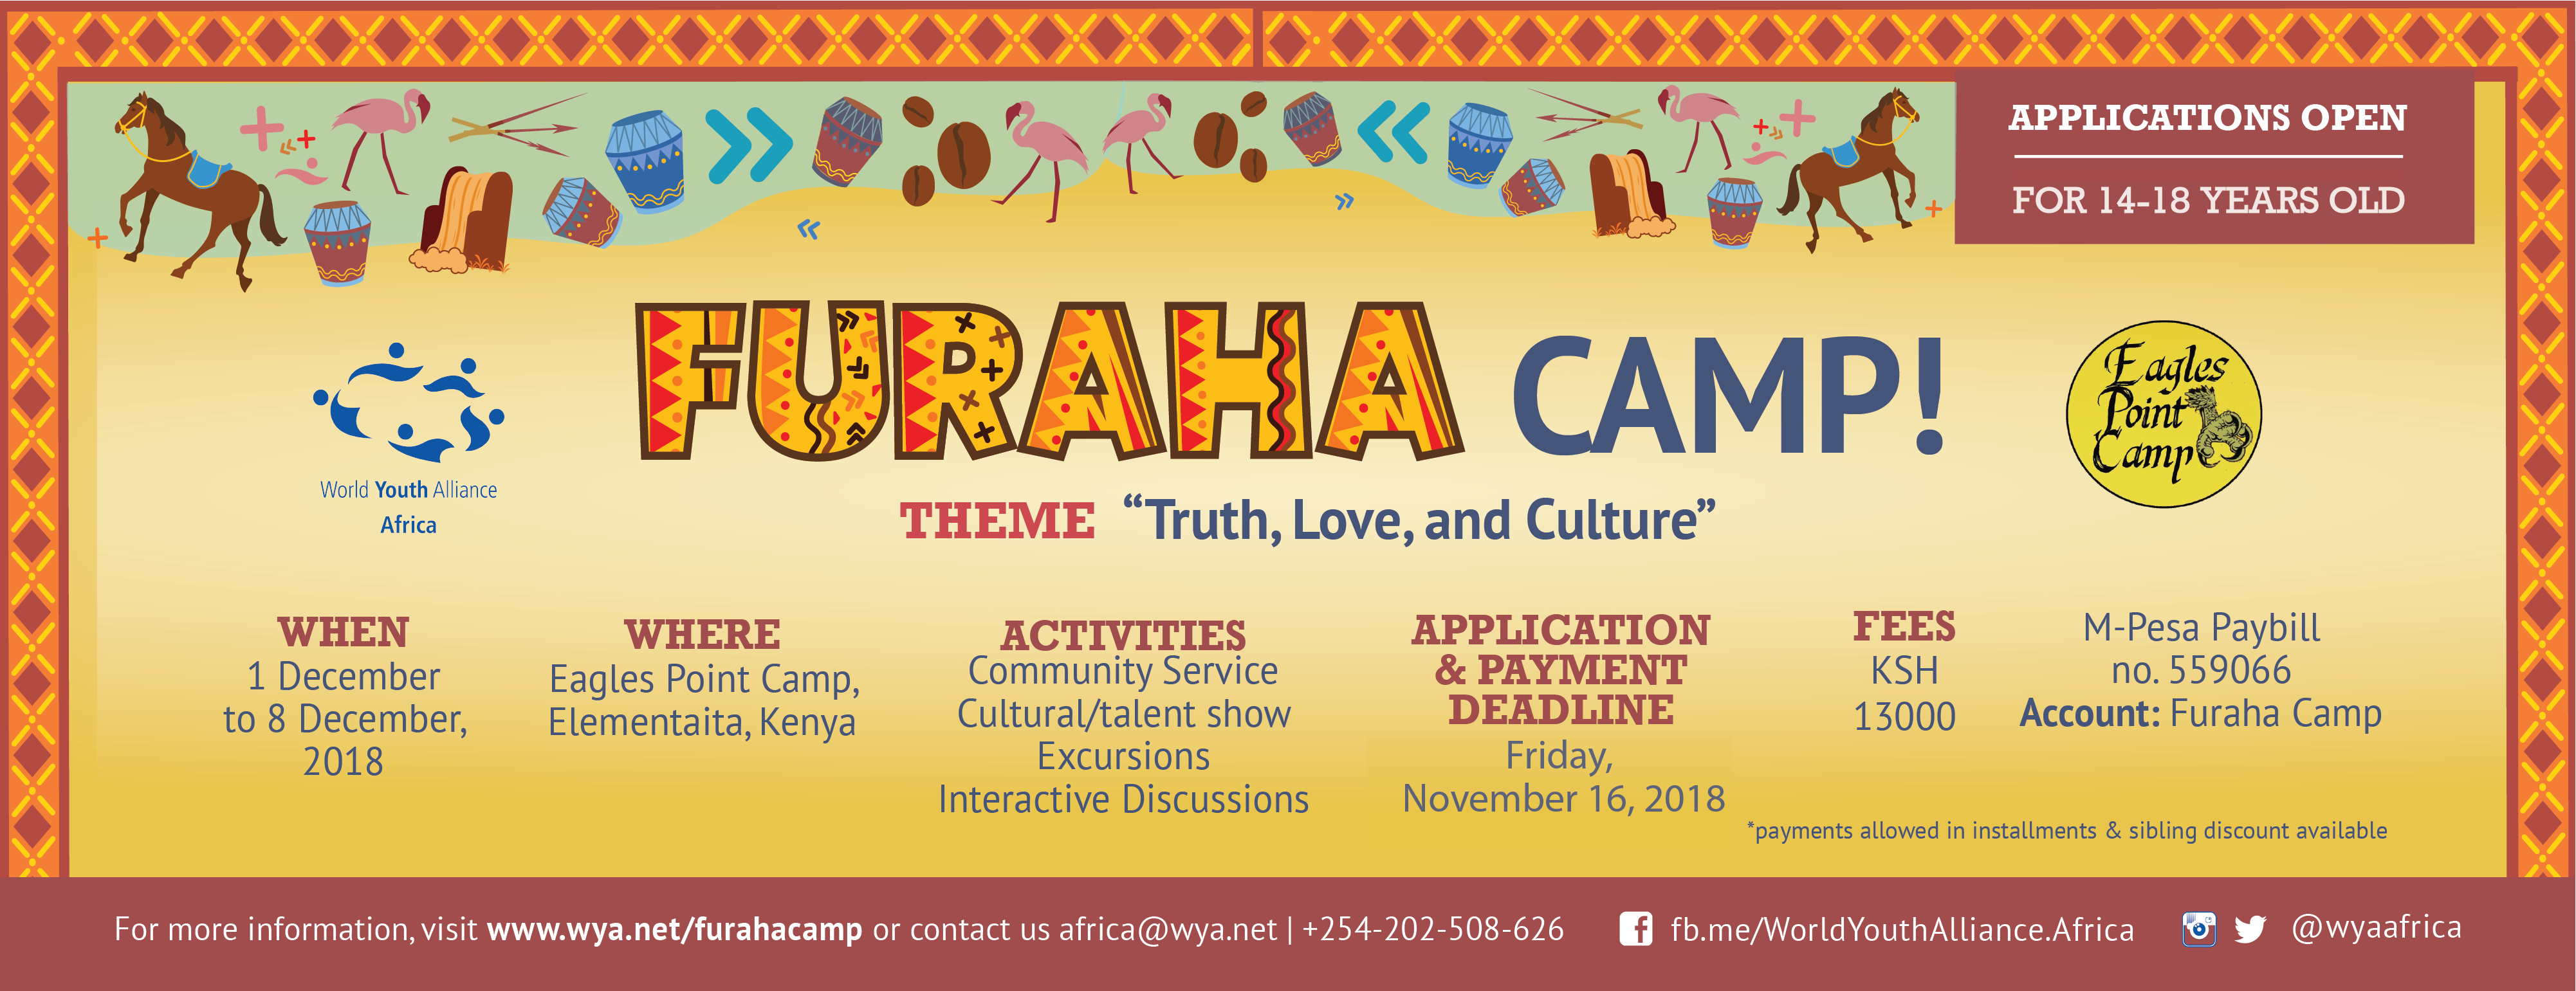 World Youth Alliance | Summer Camp